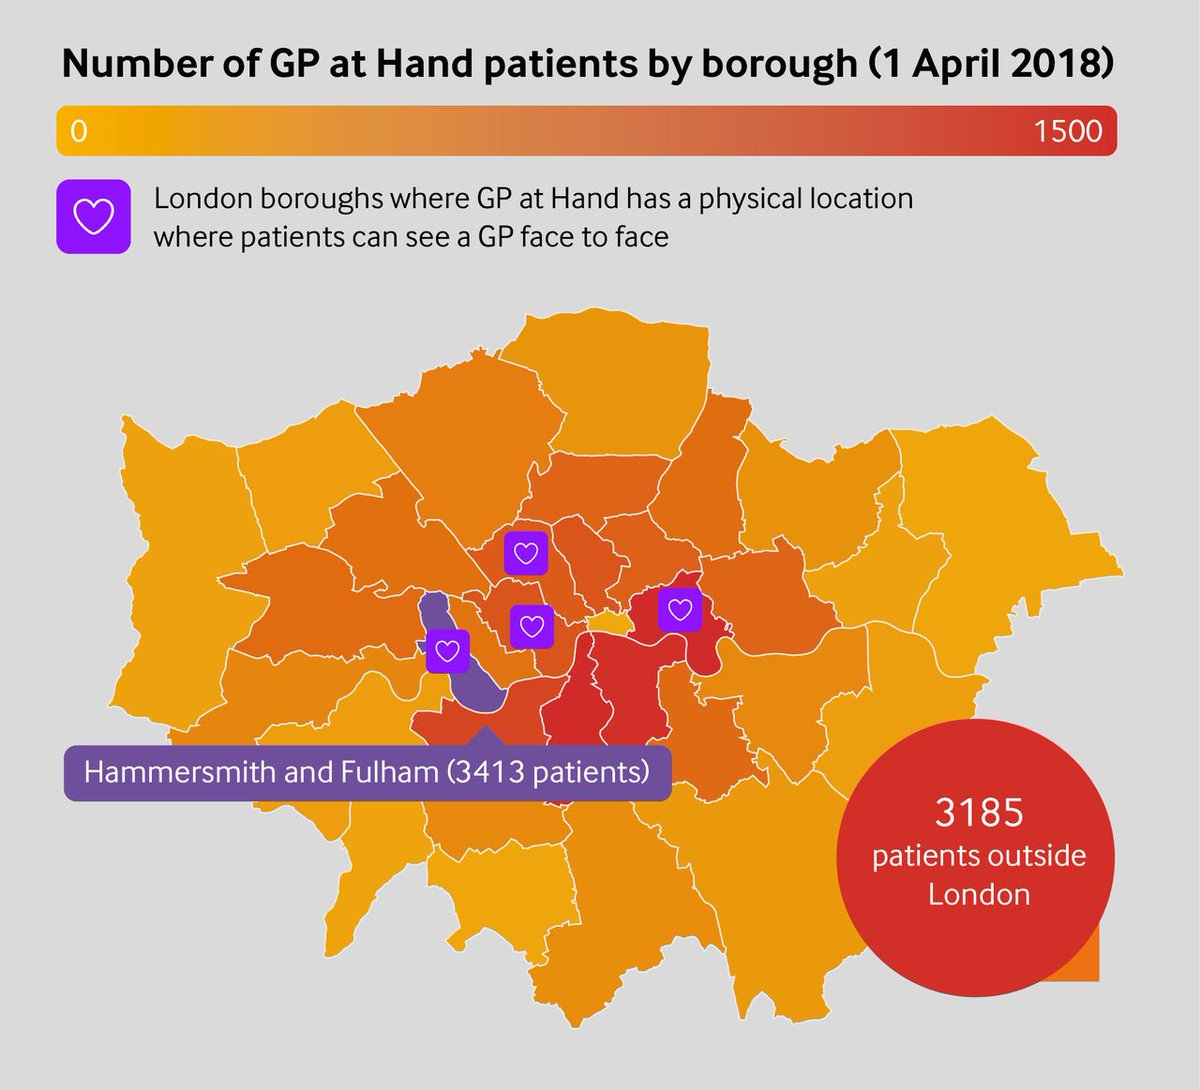 test Twitter Media - Analysis by @LondonwideLMCs and this graphic from @will_s_t show the extent to which patients from London and beyond have registered with GP at Hand: https://t.co/lFsbacIP8x @Garethiacobucci reports https://t.co/zsw6UuW2Cr